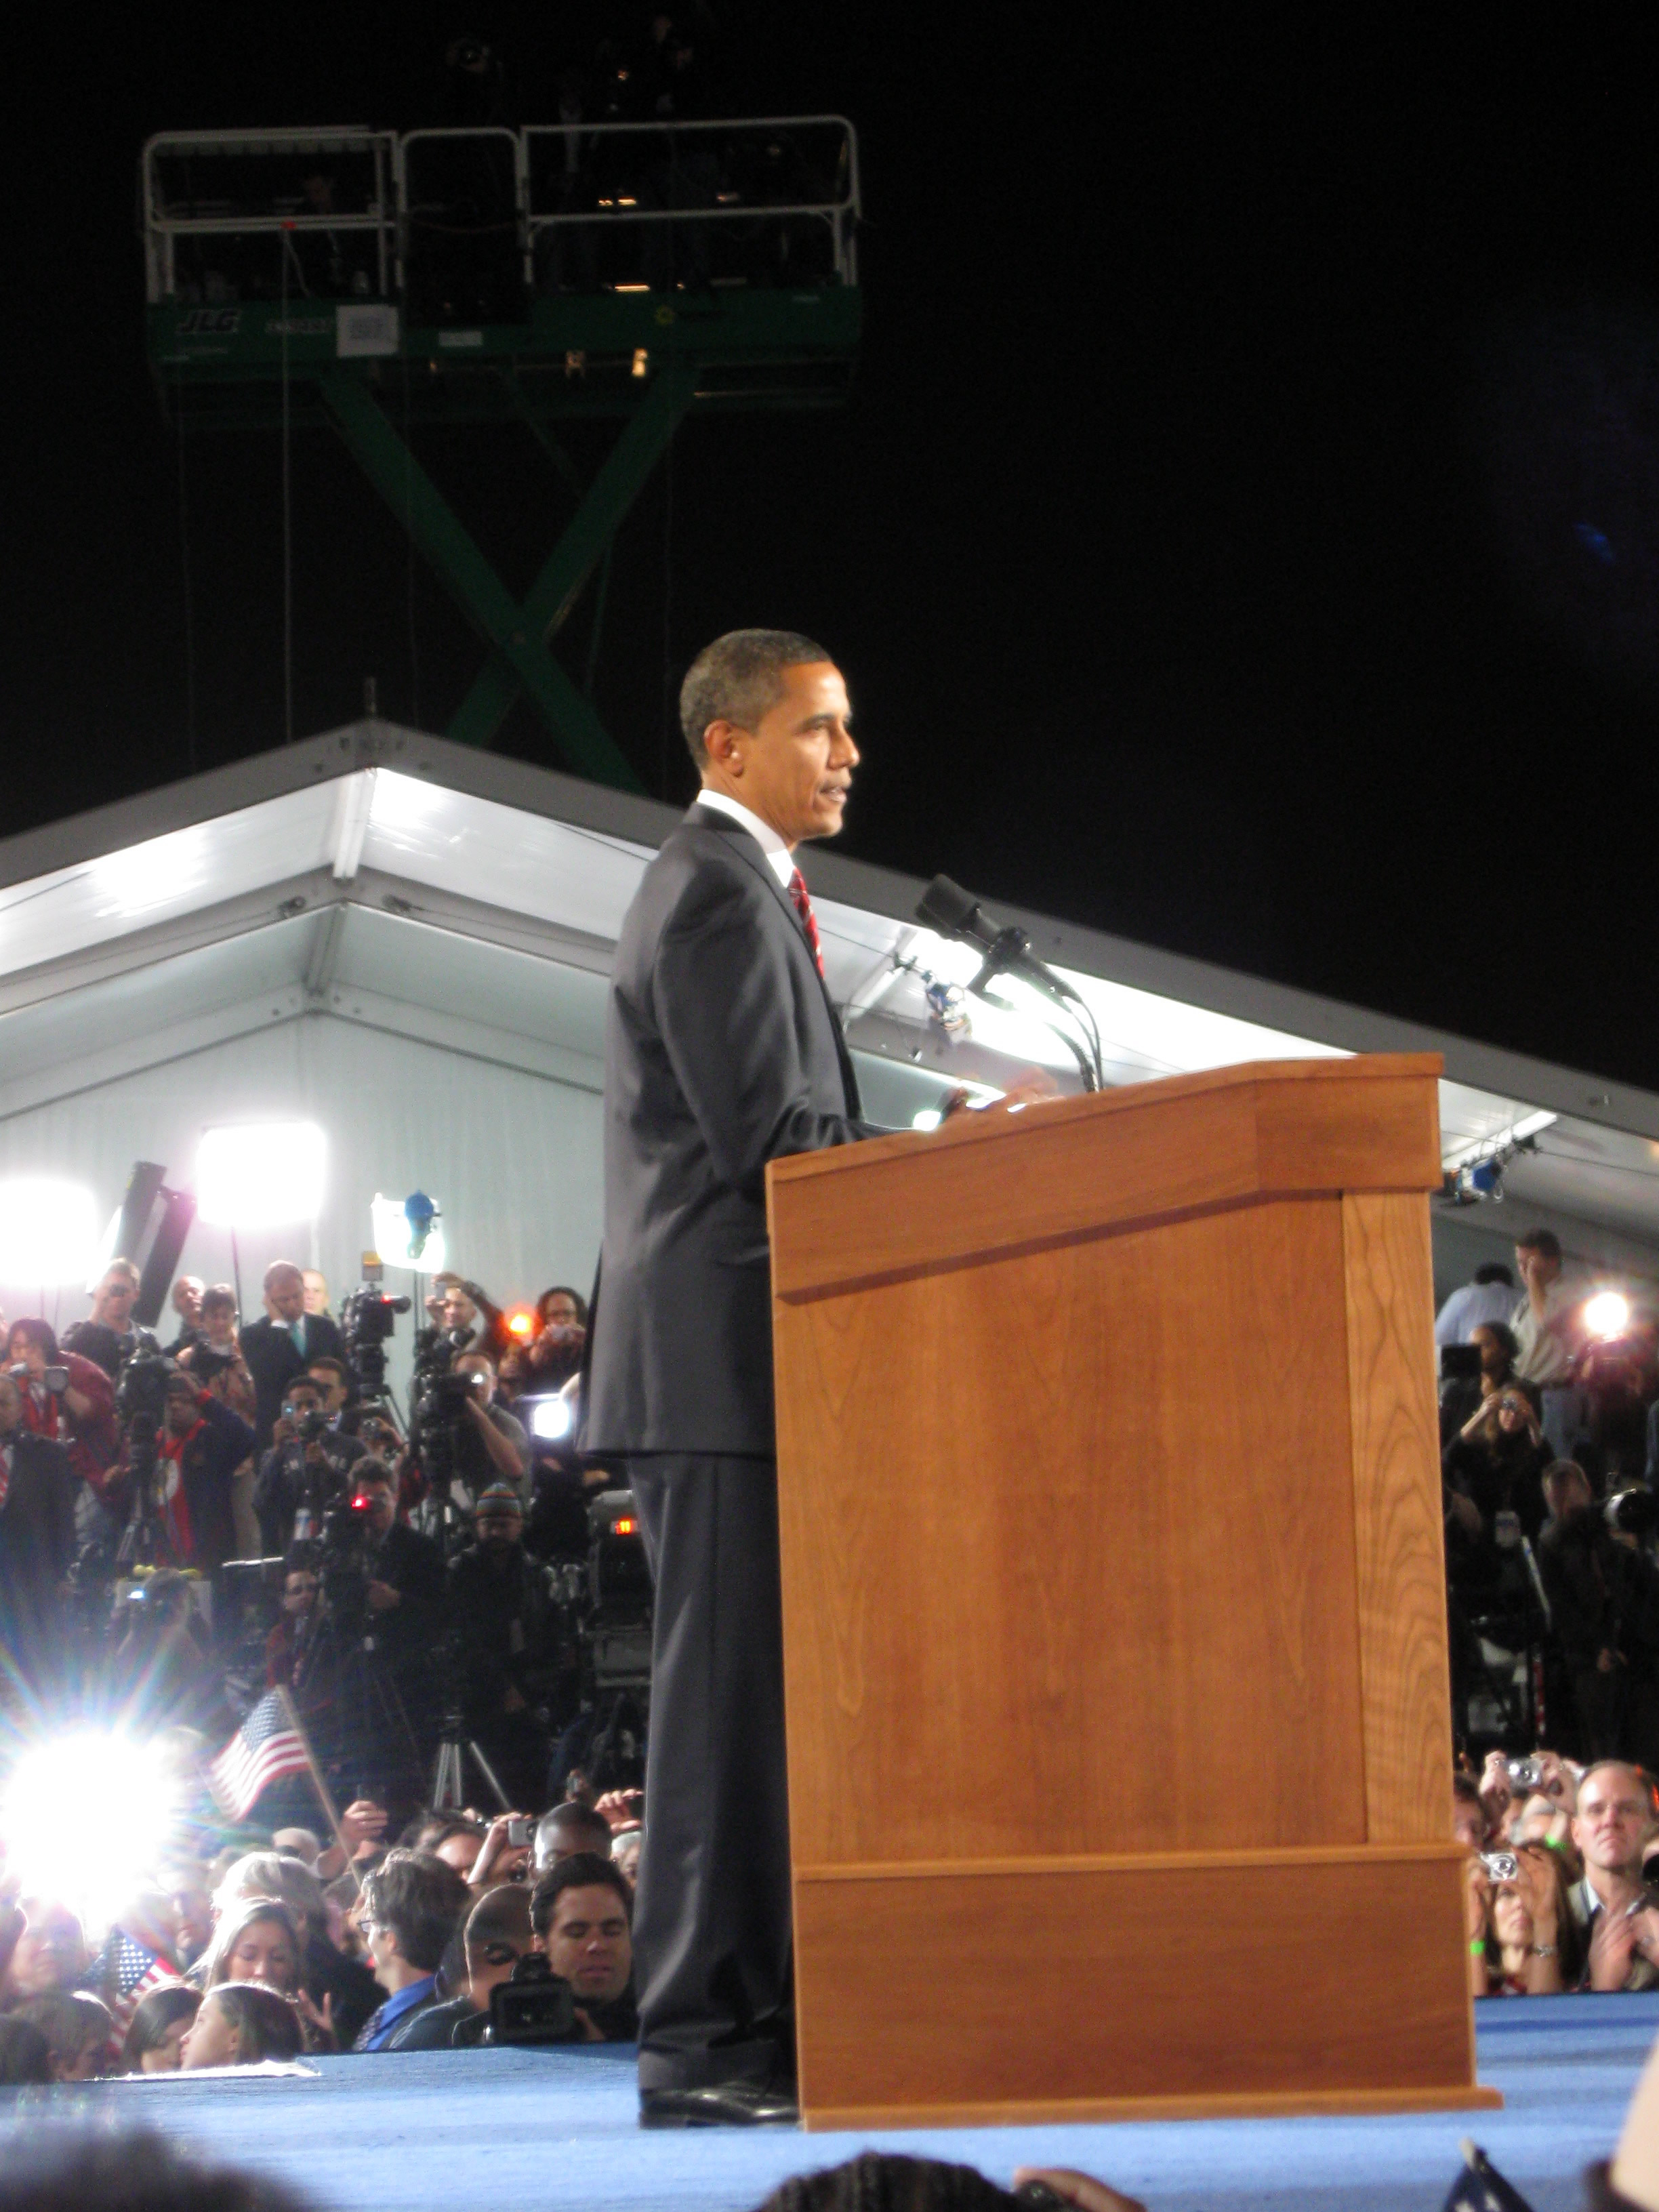 OBAMA RE-ELECTED U.S. PRESIDENT